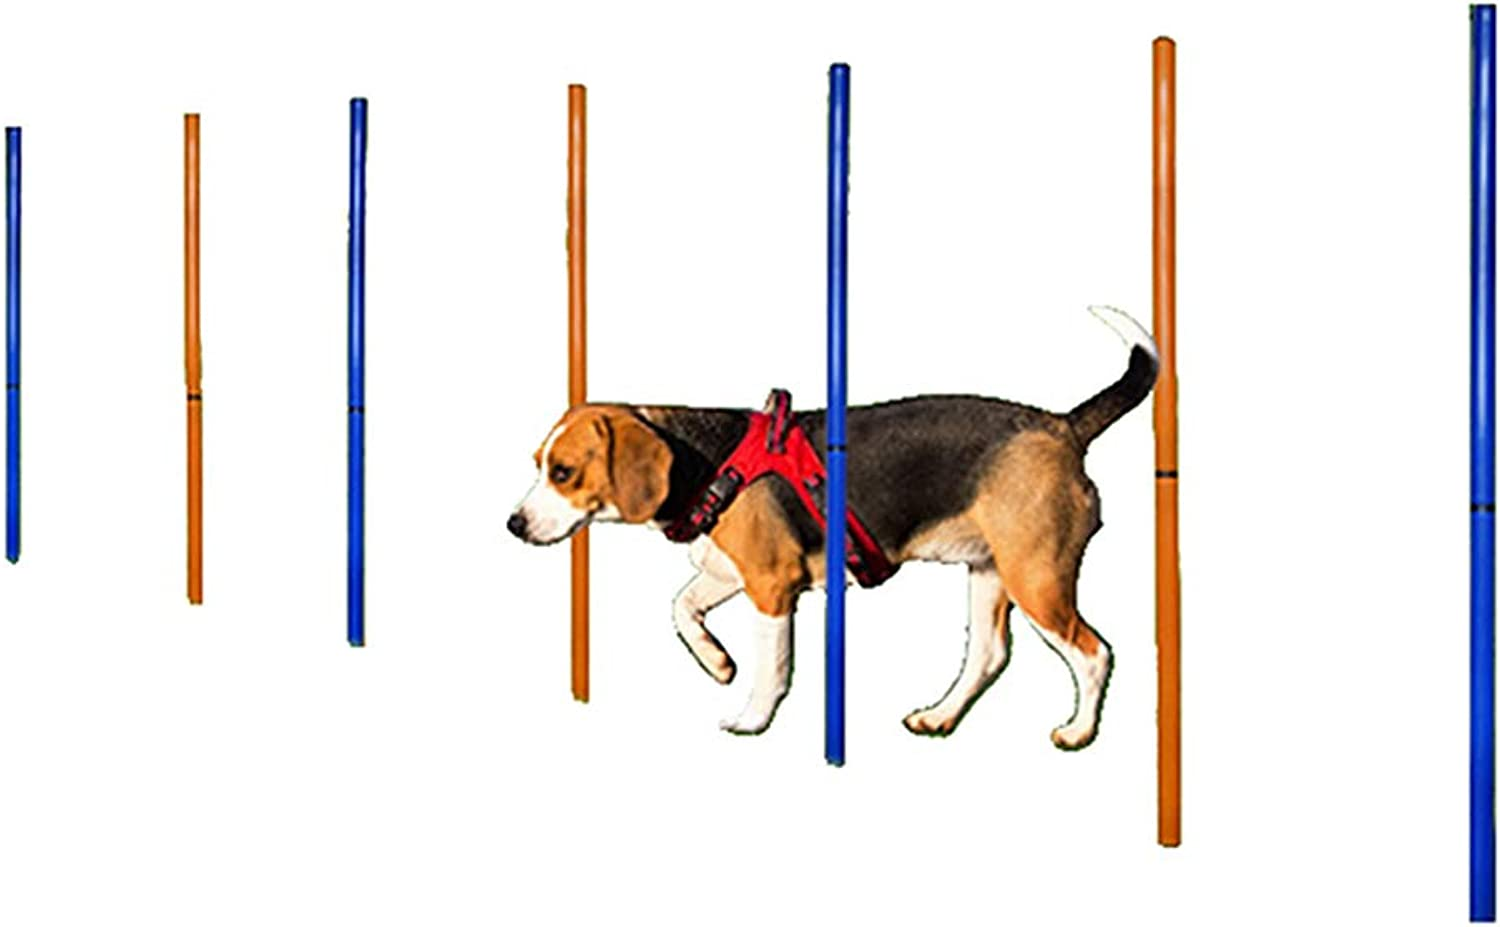 Dog Training Equipment, Pet Agility Barrier Poles Outdoor Sports Dog Play Run Jump Obedience Training Set  12 Poles